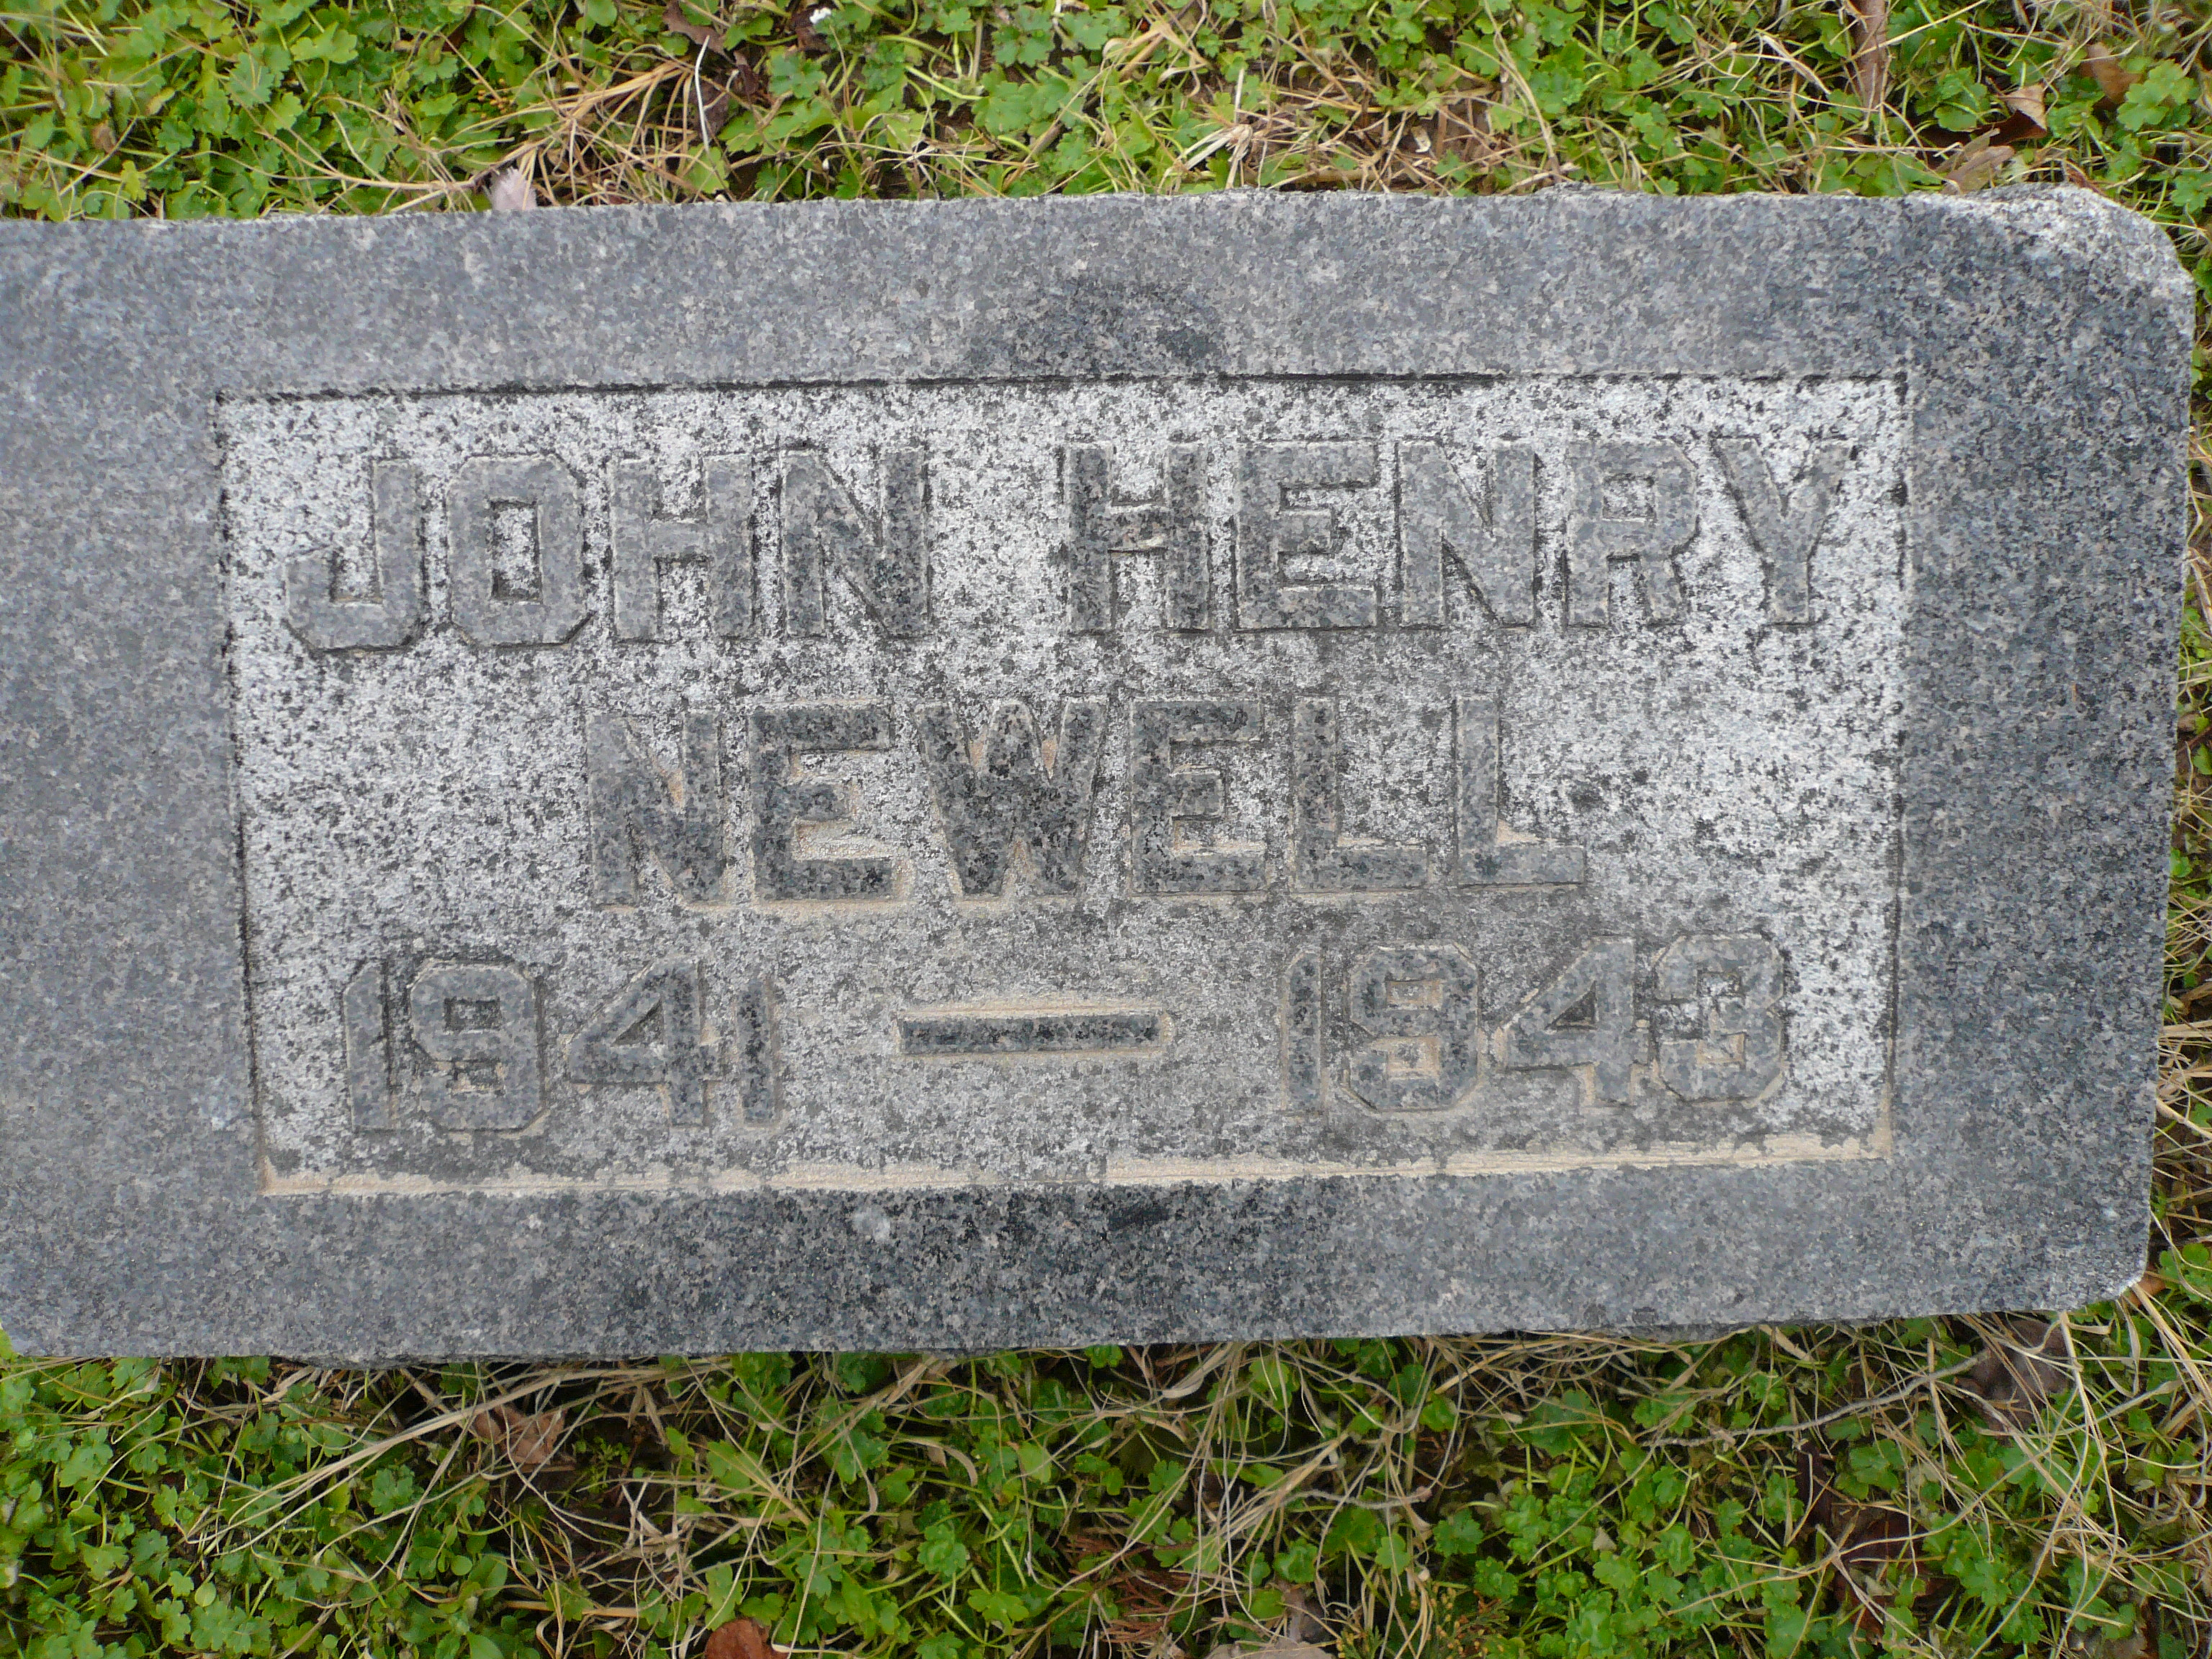 Henry Leartis Newell